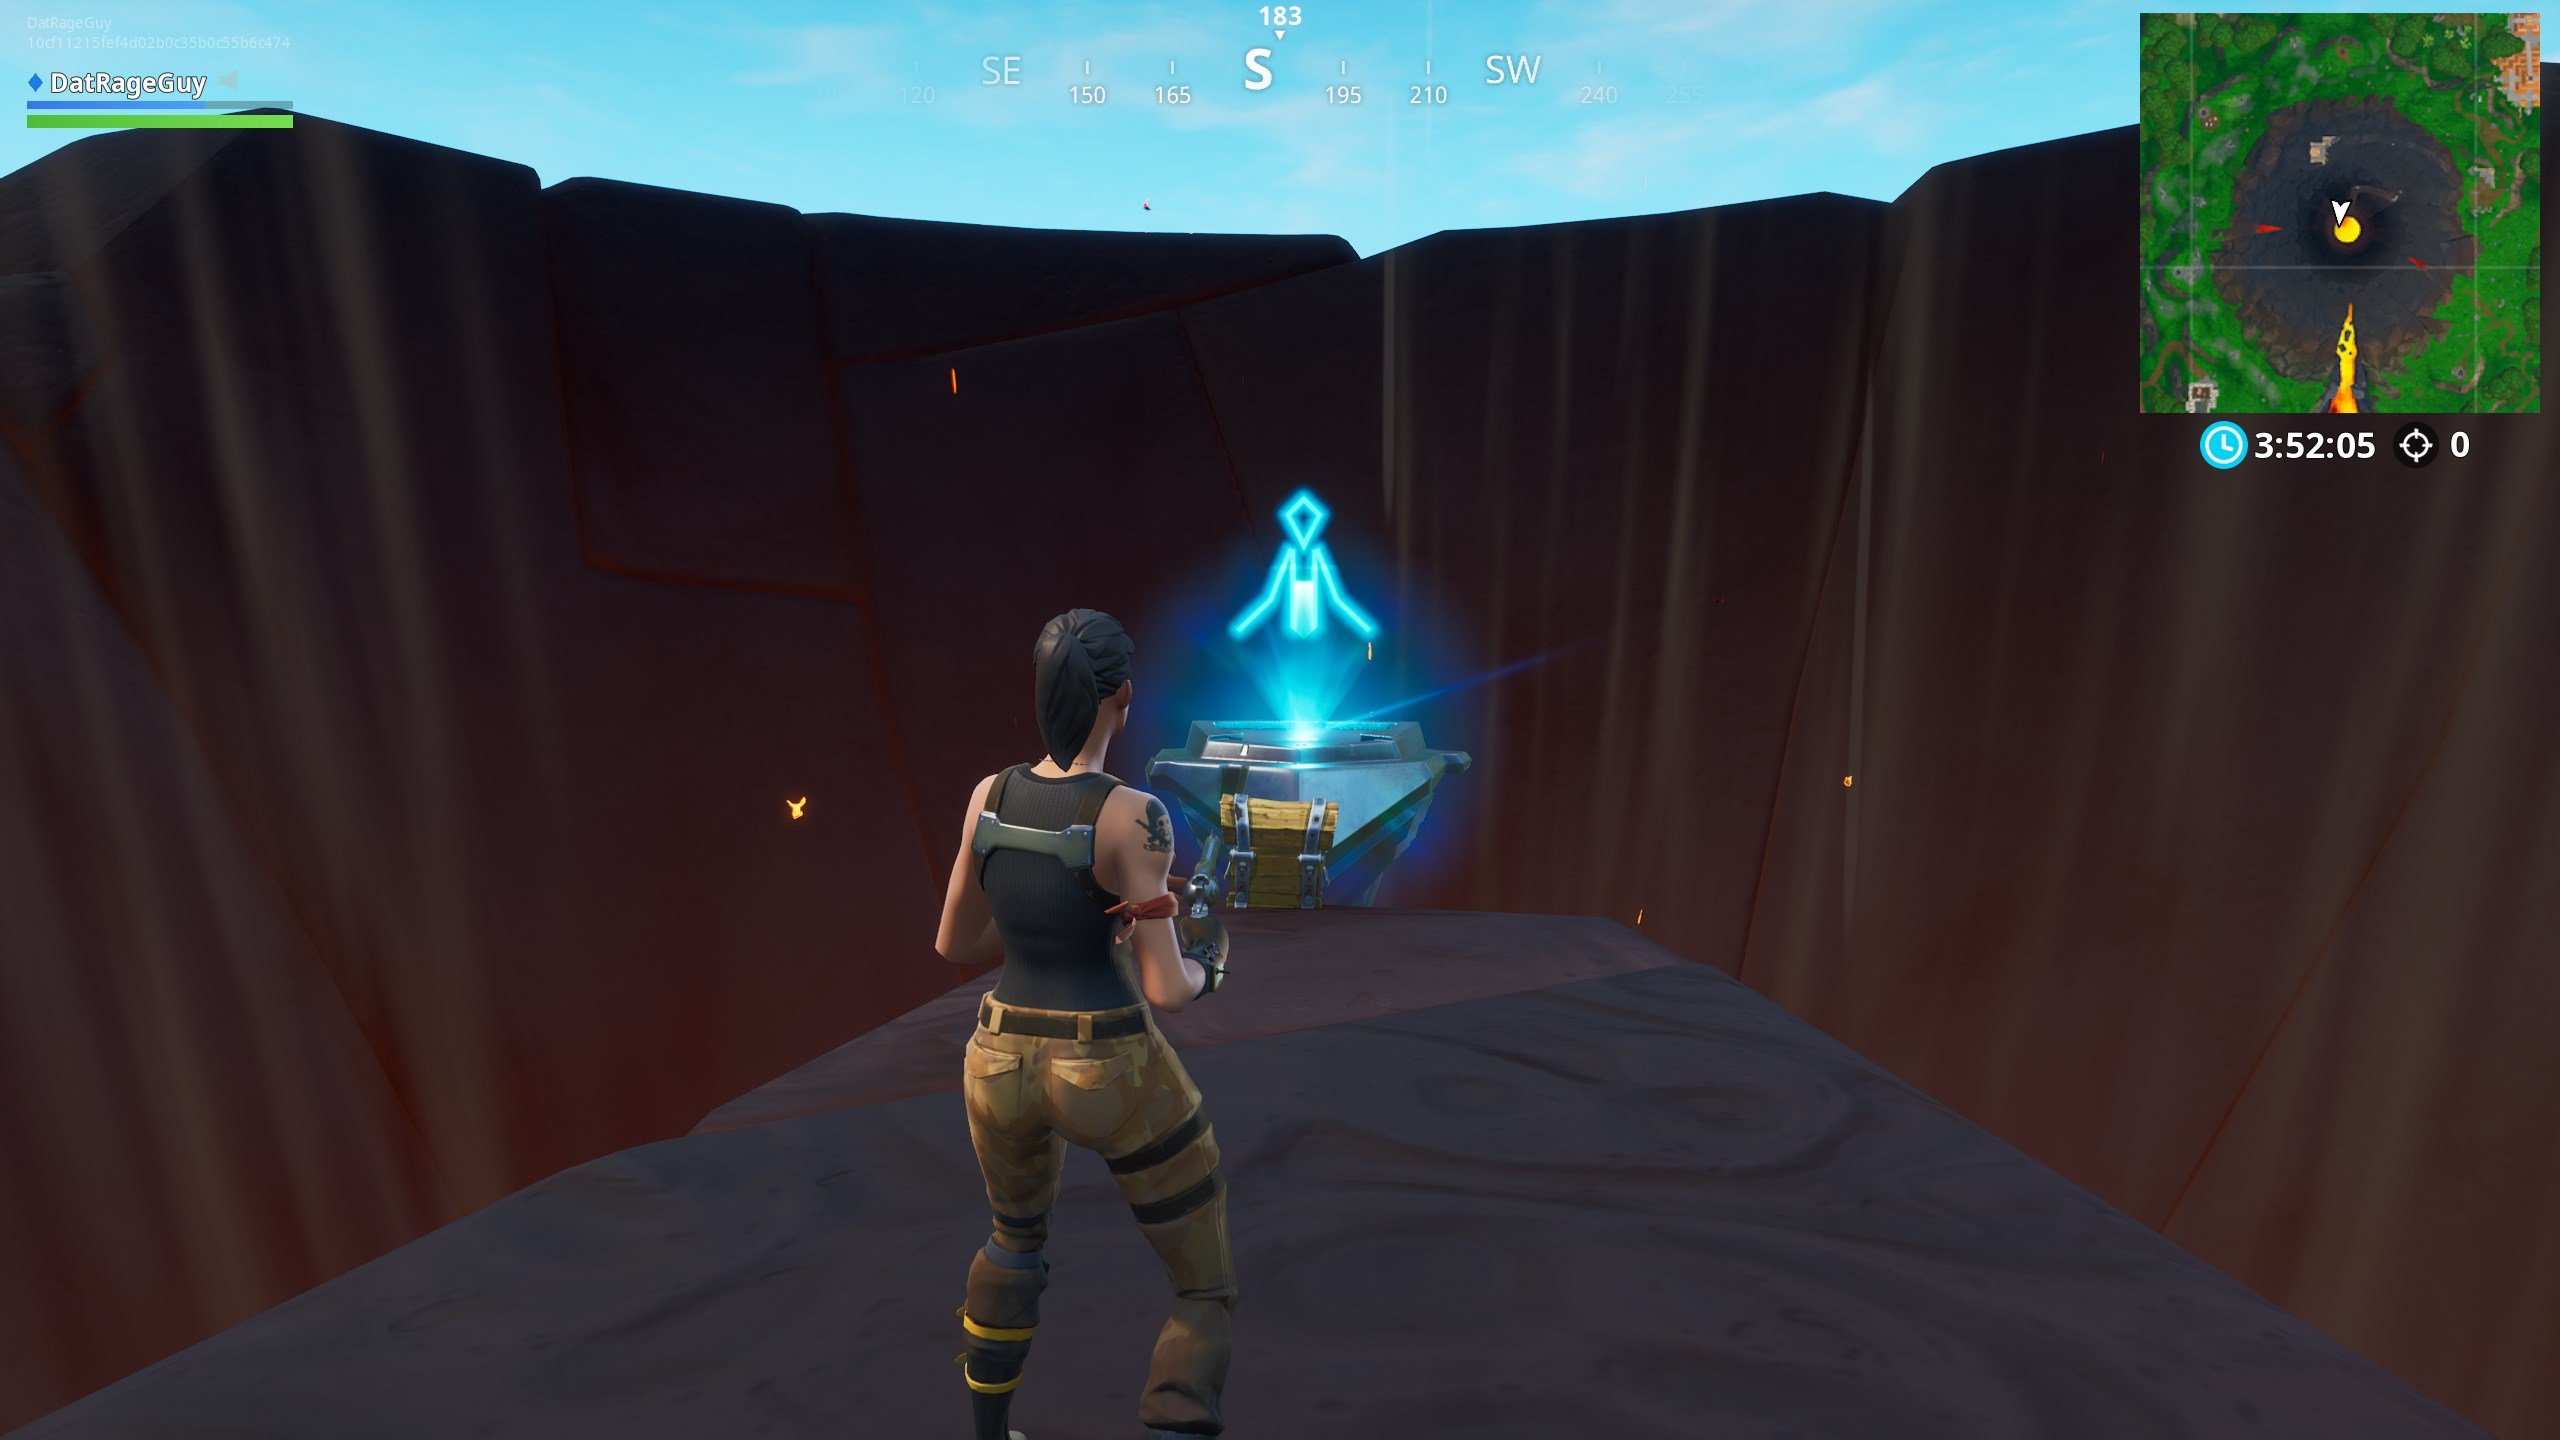 Fortnite Season 8's Unvaulting Event Bugs, Epic Offers Free Item In Response